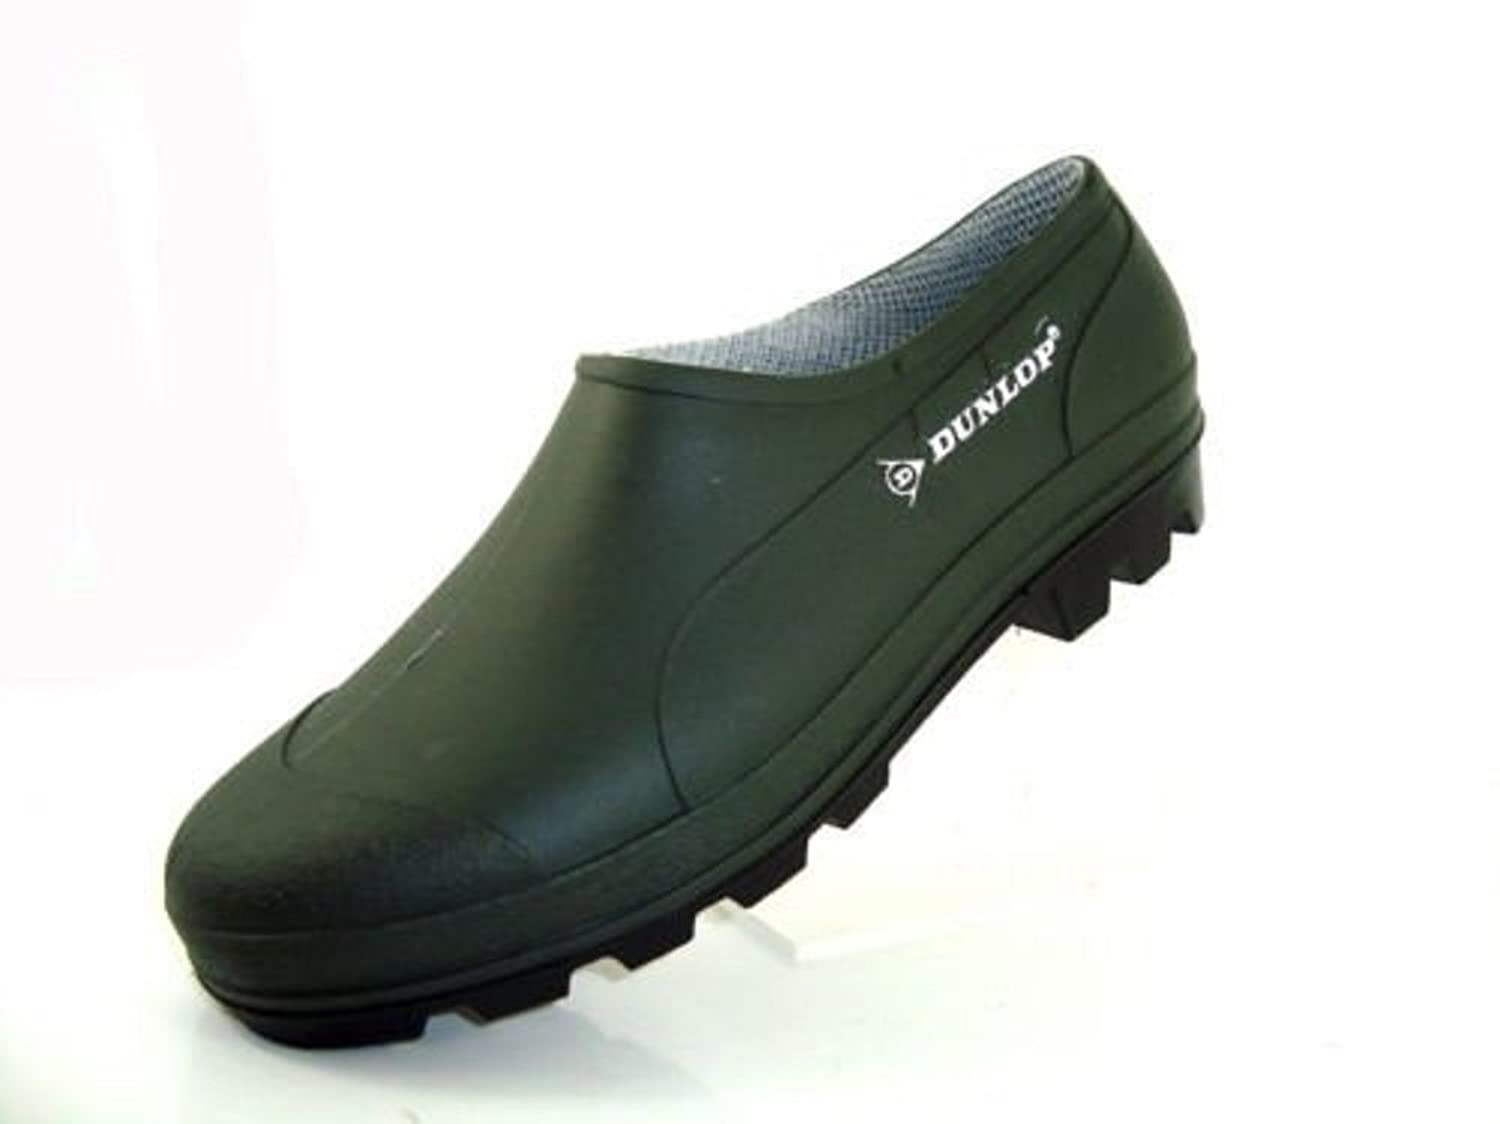 Dunlop Gardening Shoe Clog Goloshes Waterproof Unisex Sizes 3